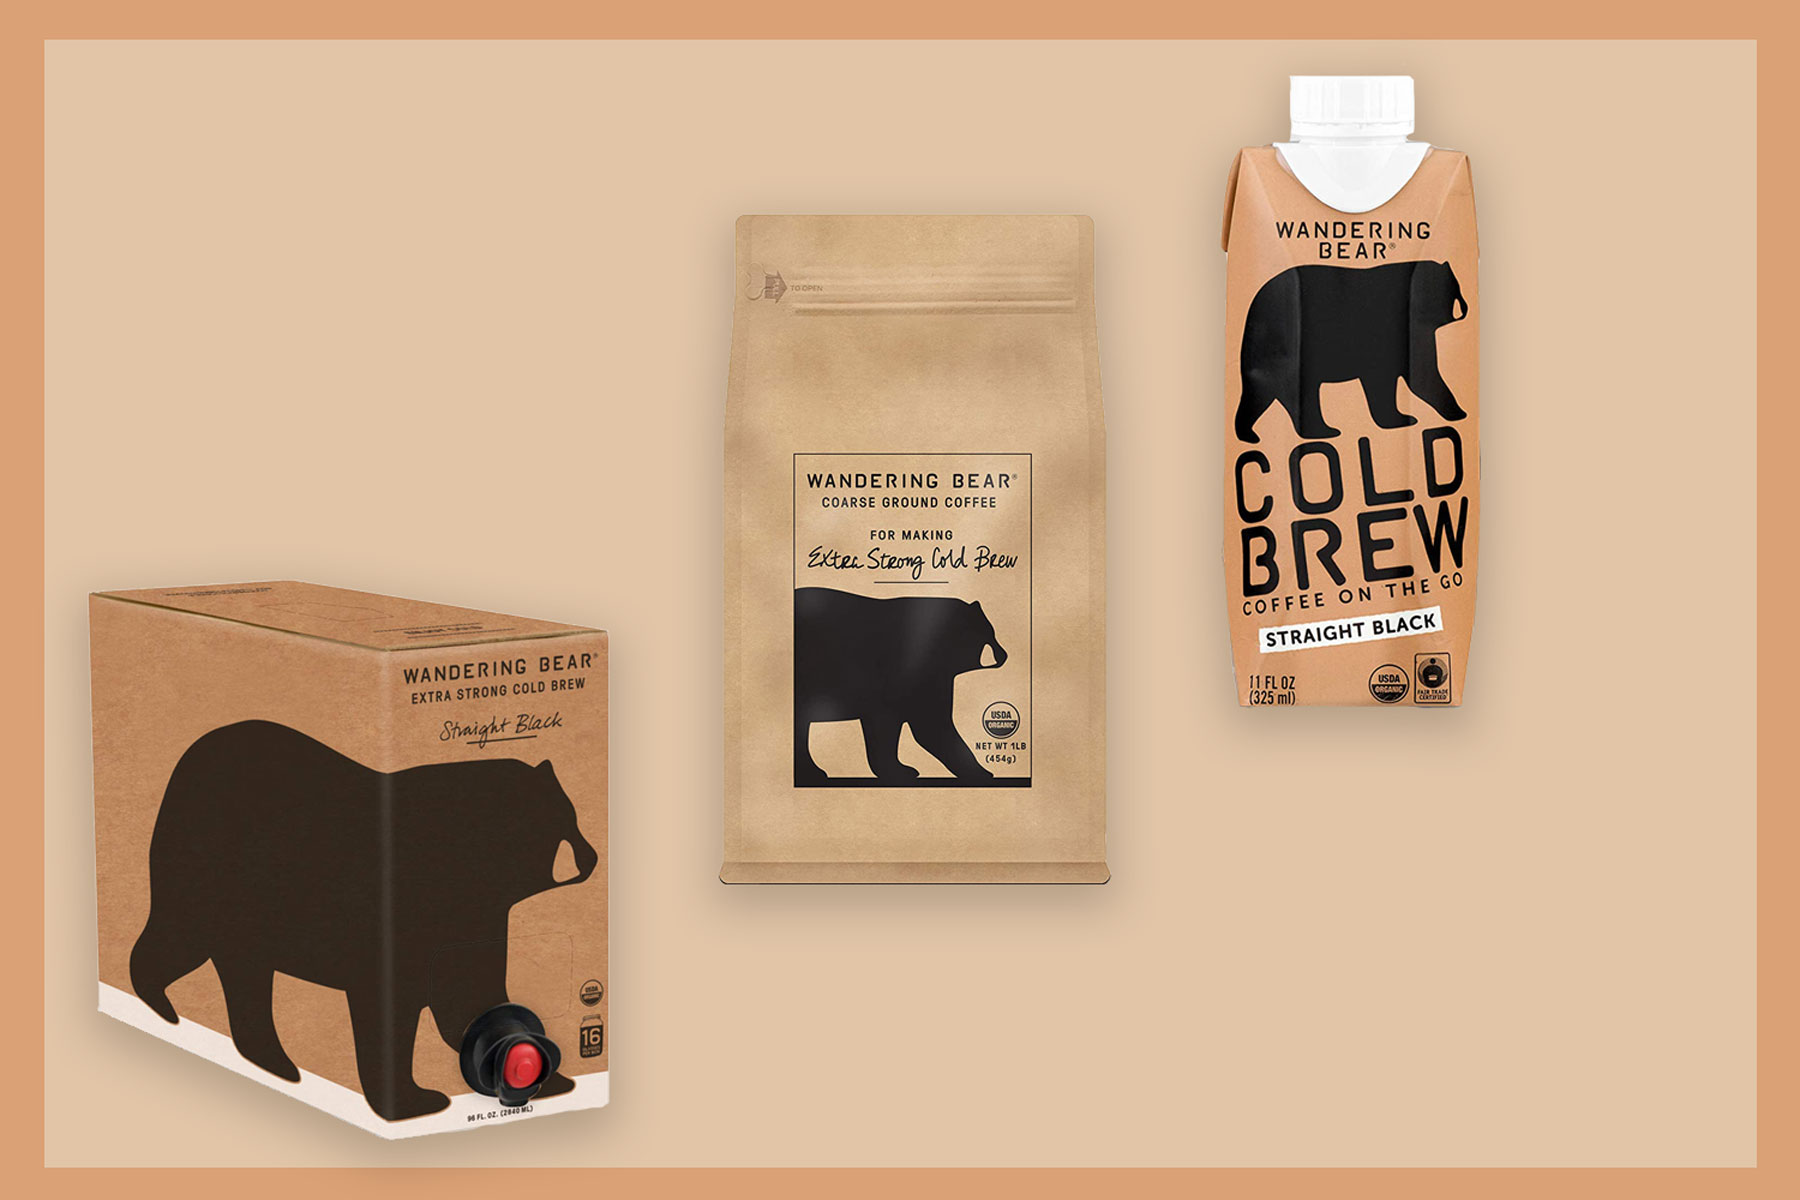 Various at-home coffee bags/products